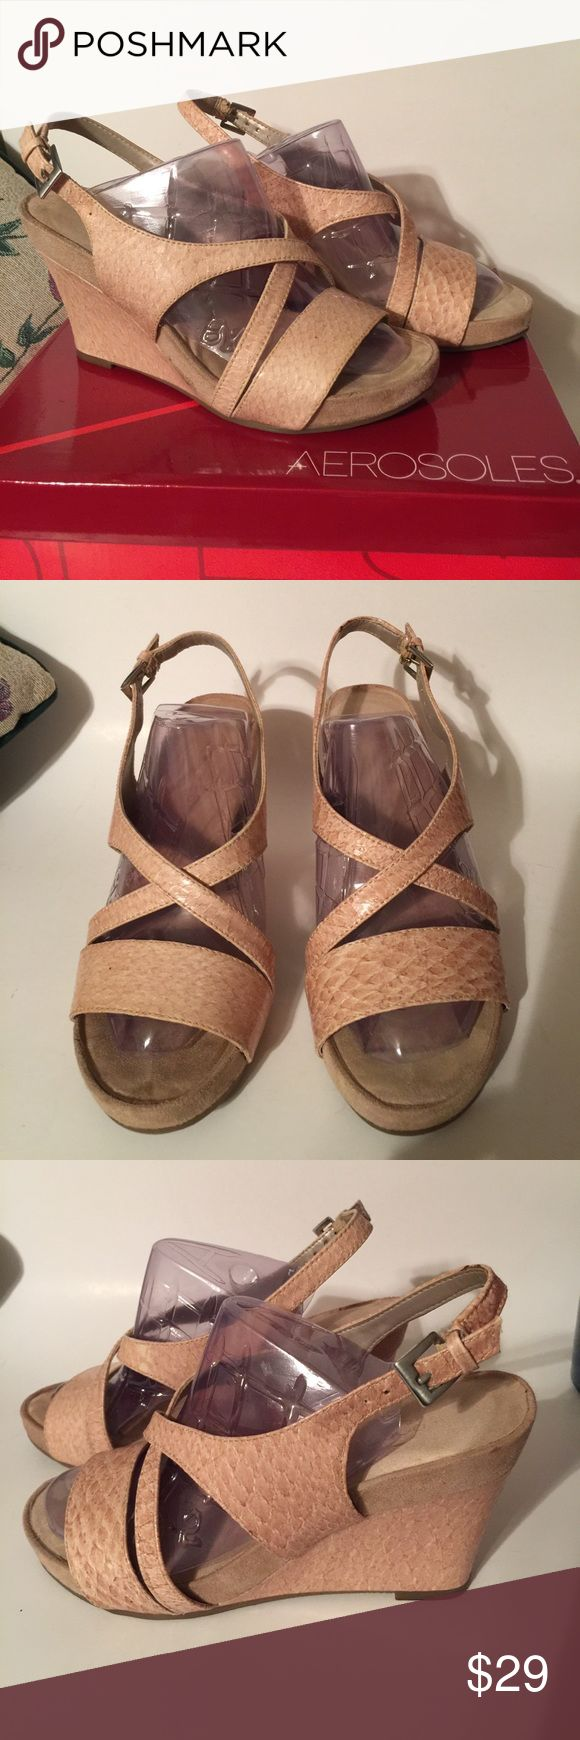 Aerosoles shoes sandals 7.5 medium tan women's Aerosol shoes sandals 7.5 medium. Color tan. Worn once. Pre-loved in excellent condition. Women's Ladies Fashion. Check out my closet, we have a variety of women's, Victoria Secret, handbags 👜 purse 👛 Aerosoles, shoes 👠fashion jewelry, necklace, clothing, dress, Beauty, home 🏡 .  Ships via USPS. Smoke & Pet-Free. Offers 30% OFF bundle discount. Always a FREE GIFT 🎁 with every purchase!!! Thank you. AEROSOLES Shoes Sandals